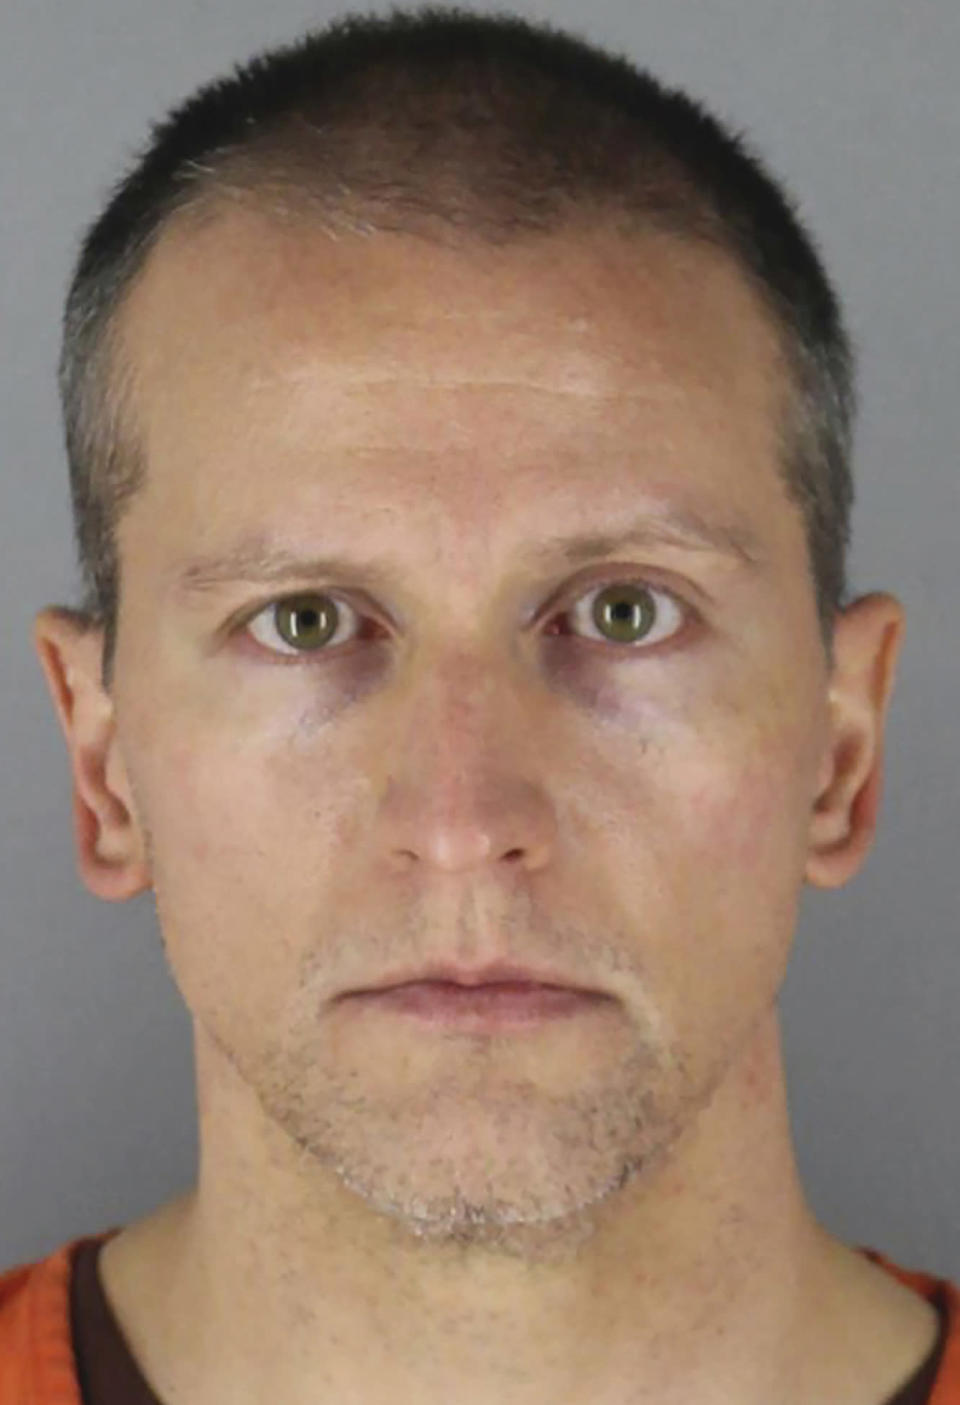 FILE - This undated photo provided by the Hennepin County Sheriff's Office in Minnesota on June 3, 2020, shows, former Minneapolis police officer Derek Chauvin. Prosecutors in the upcoming trial of Chauvin, charged with killing George Floyd, want to introduce evidence of a 2017 arrest in which they say the officer held his knee on the back of a 14-year-old boy and ignored his pleas that he couldn't breathe. (Hennepin County Sheriff's Office via AP, File)